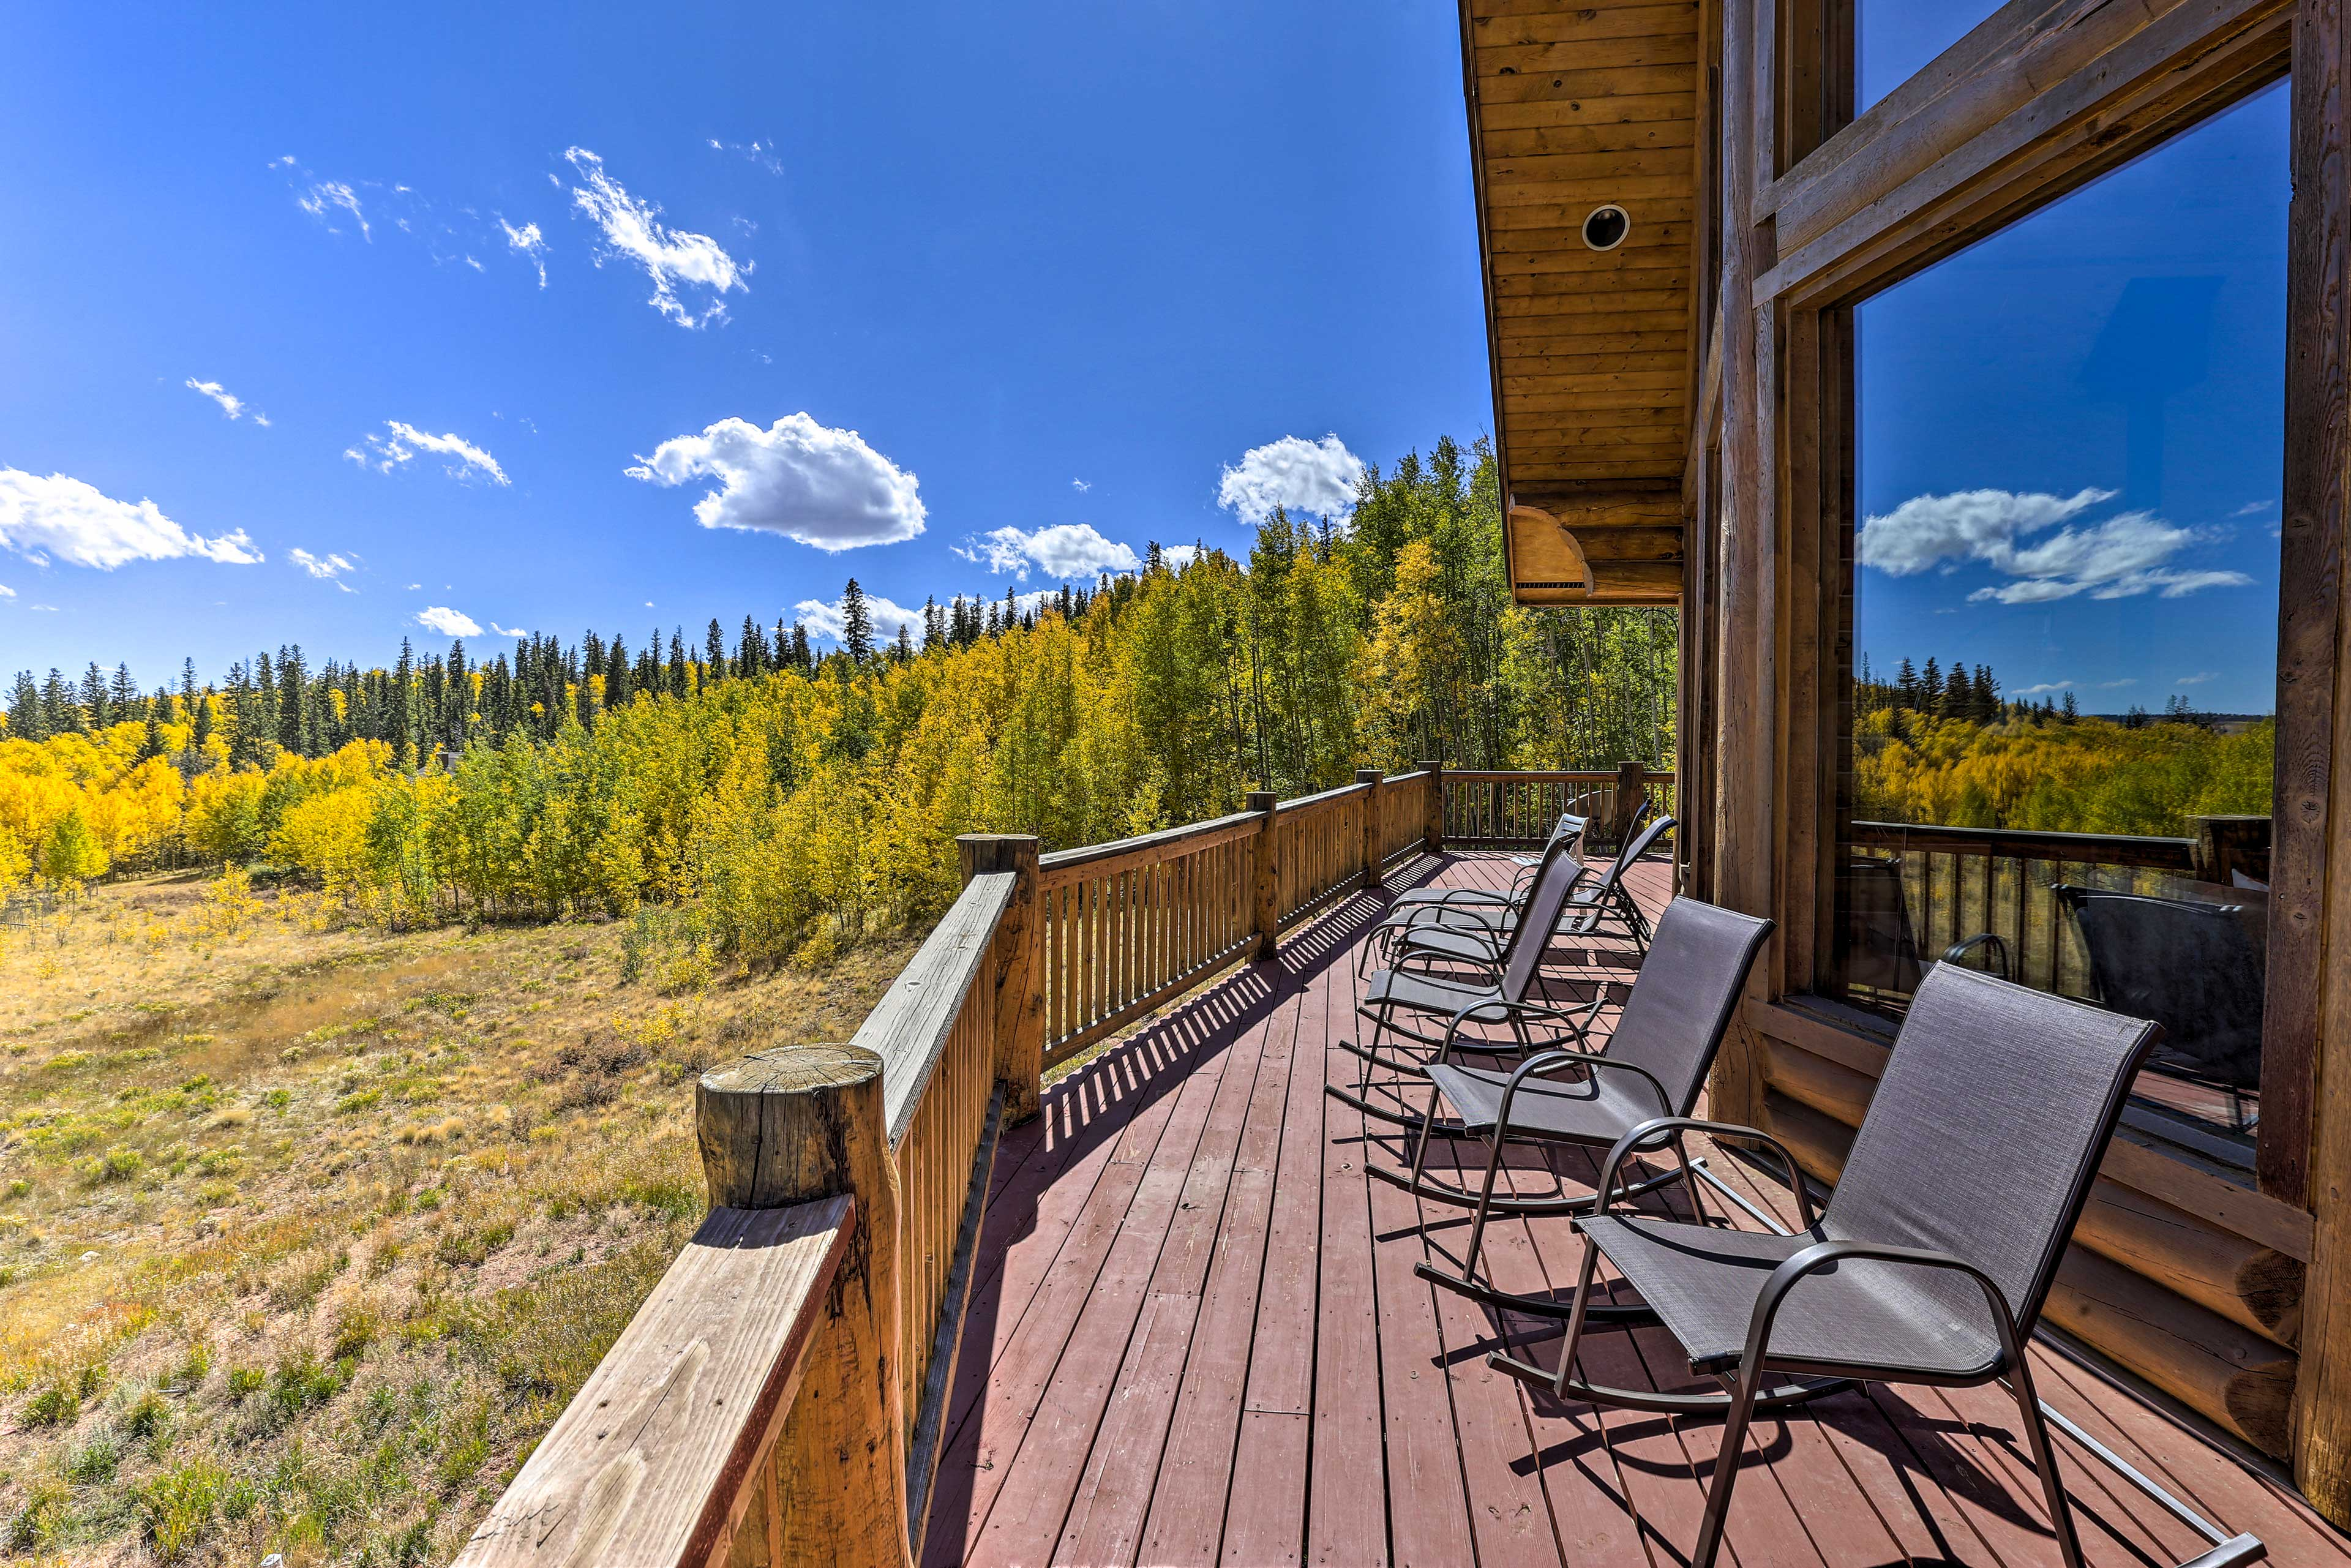 Lounge on the deck and enjoy the fantastic views.